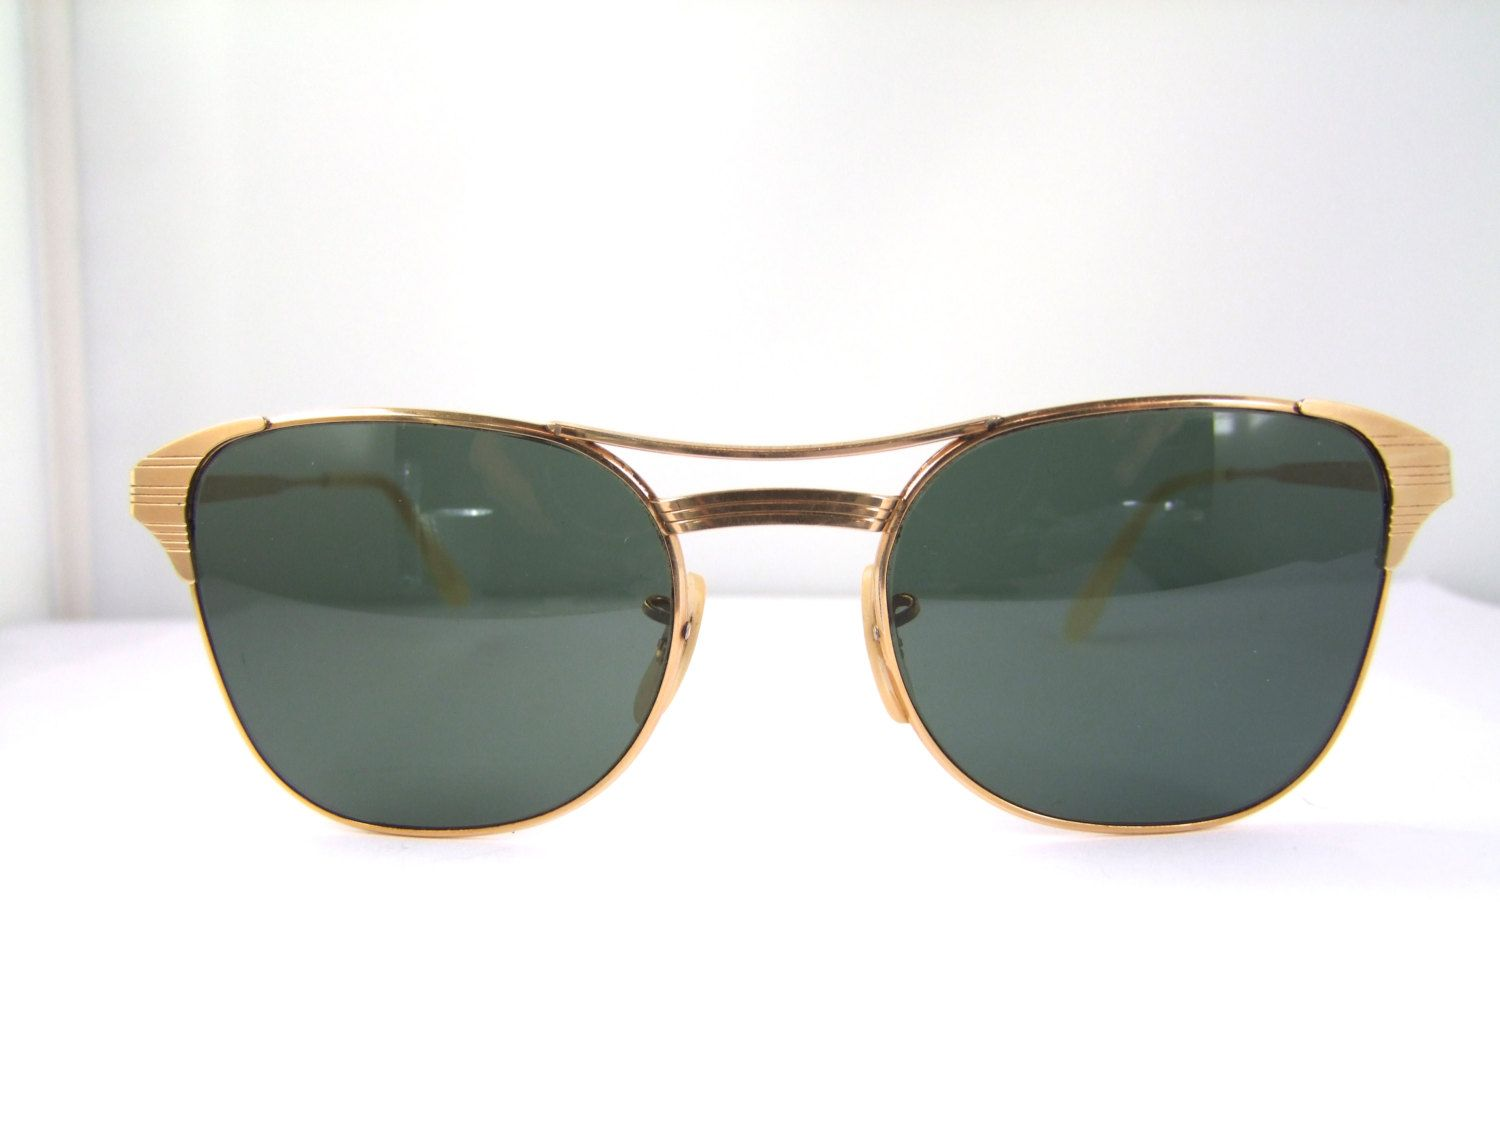 8f5937d898 1960s Gold filled Vintage Ray Ban Signet Made in USA  ray ban sunglasses  rare vintage style by ifoundgallery on Etsy  rayban  goldfilledrayban   signet